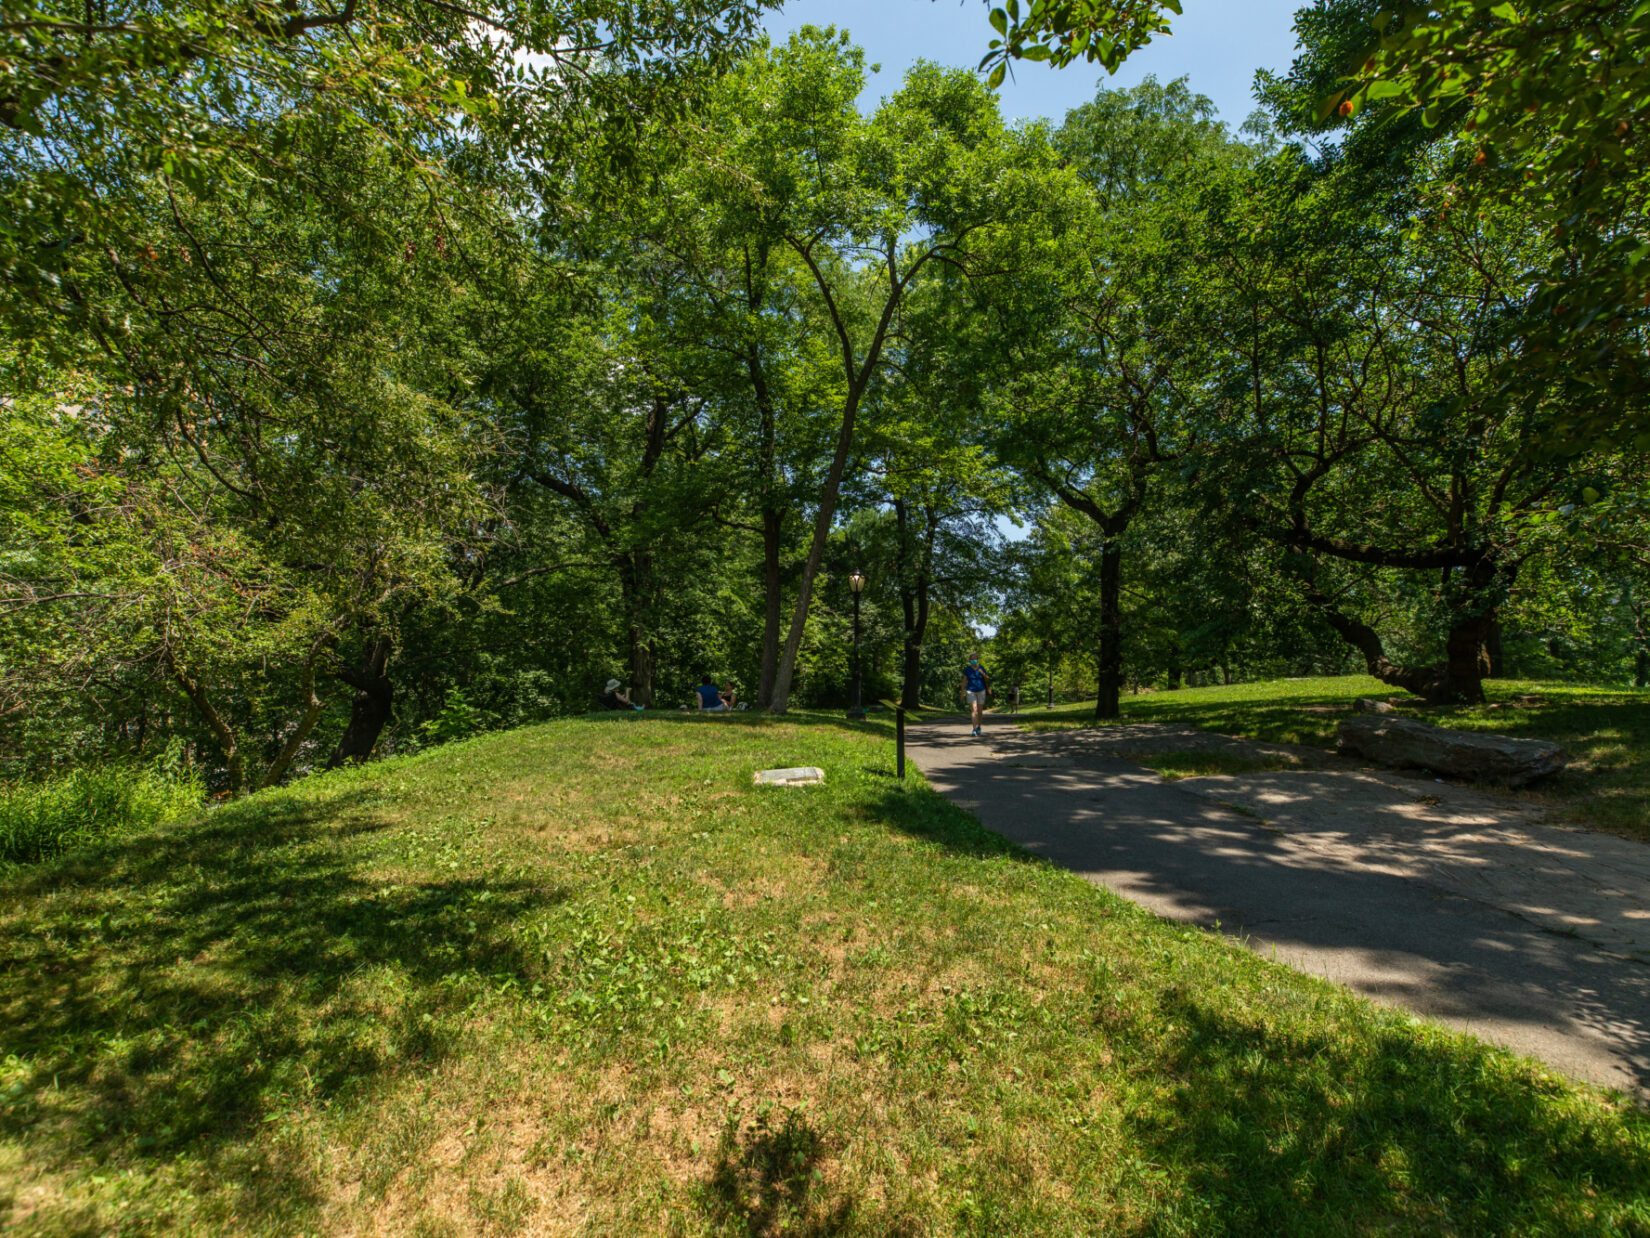 A parkgoer can be seen strolling a path lined with trees